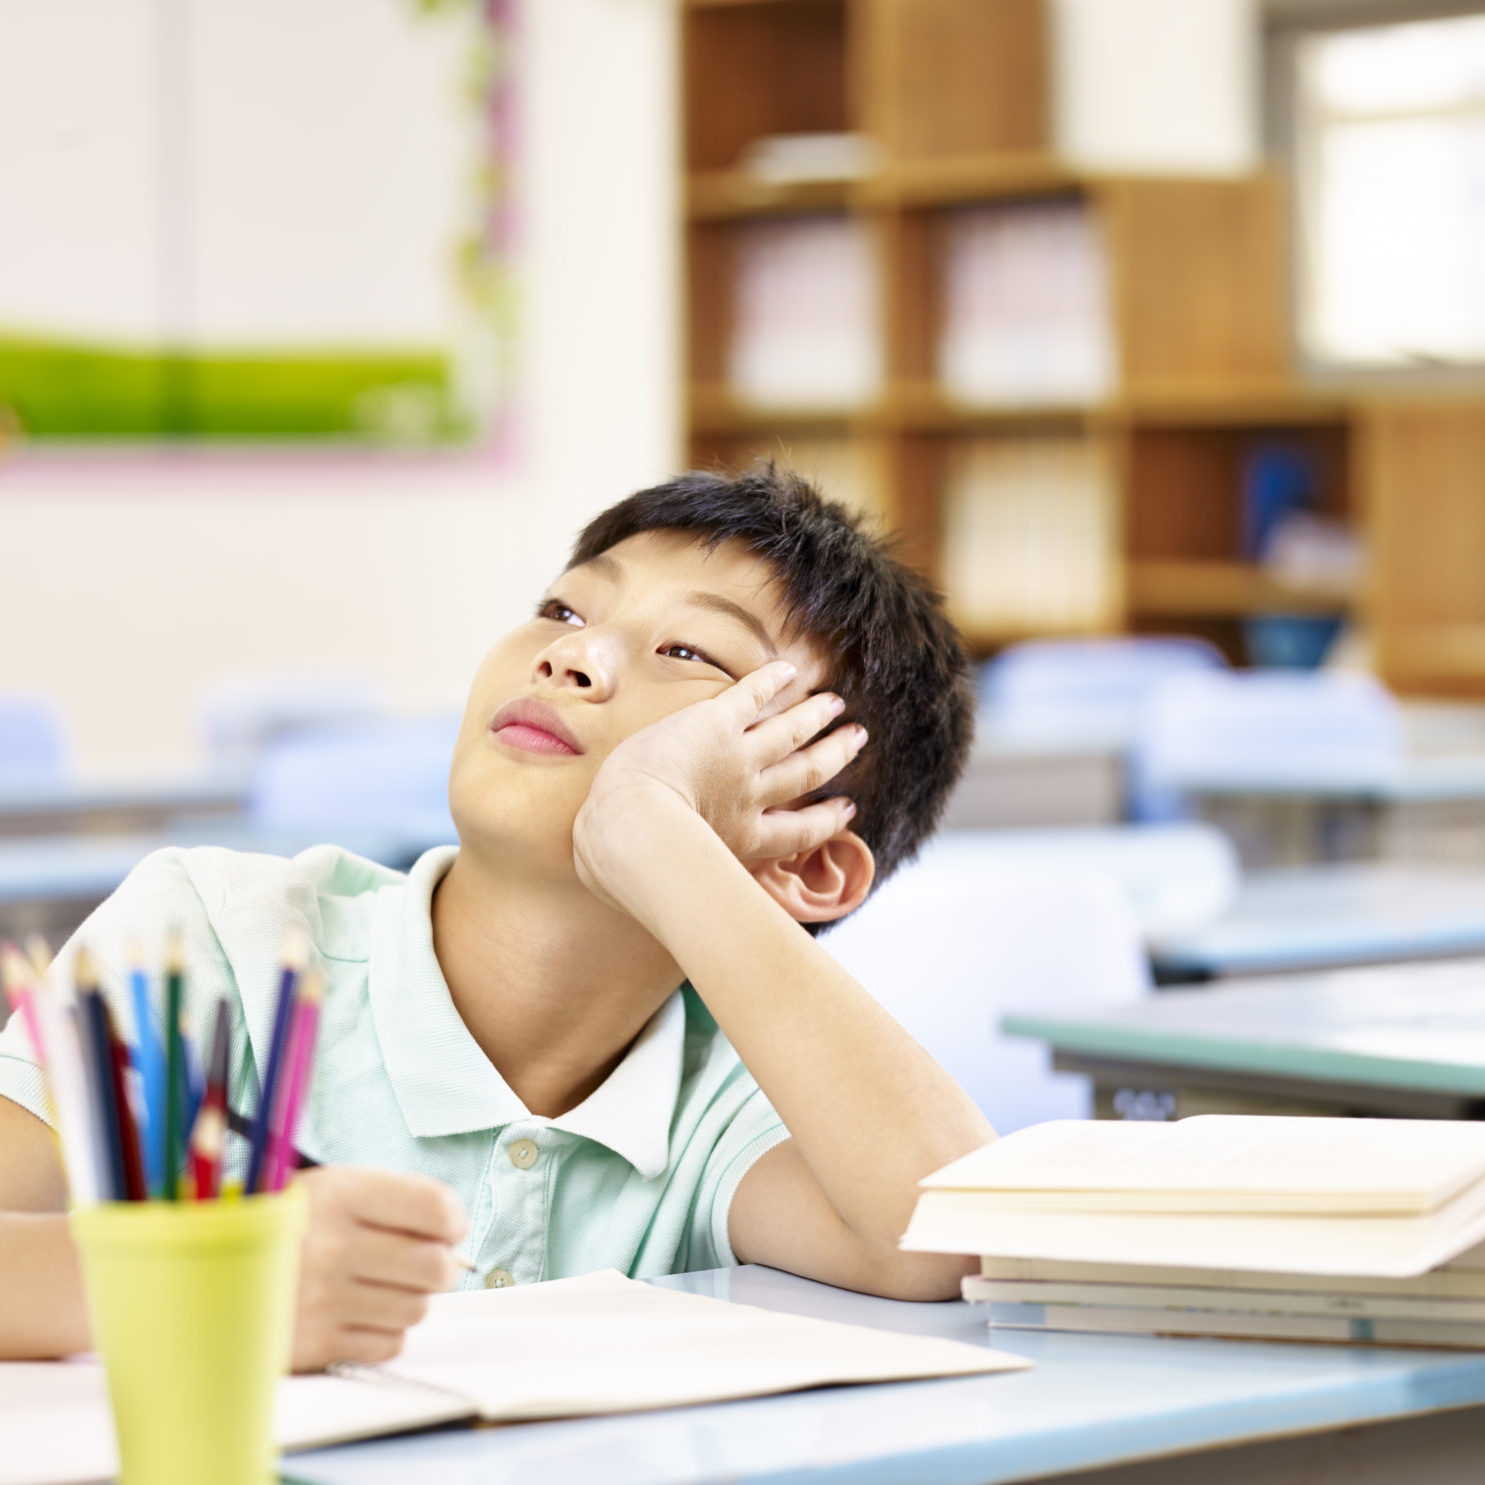 young student not focusing in class due to attention deficit hyperactivity disorder